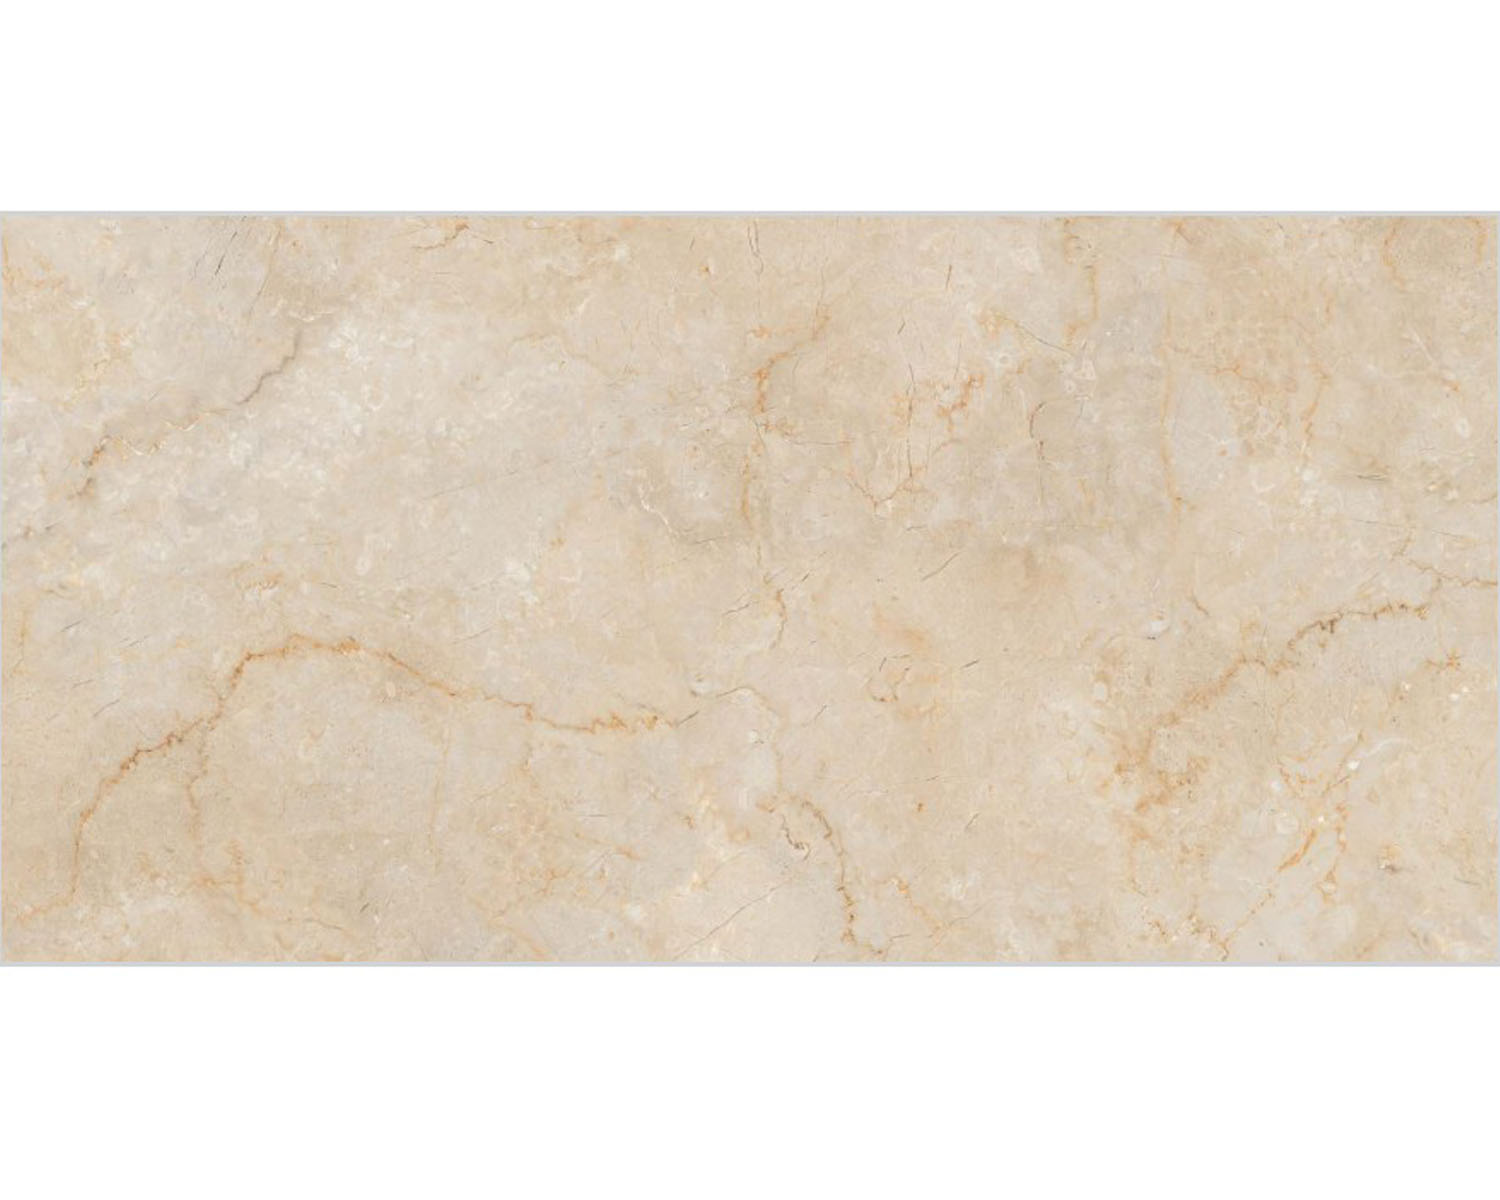 Patel Marble Texture : Super sanitary store products